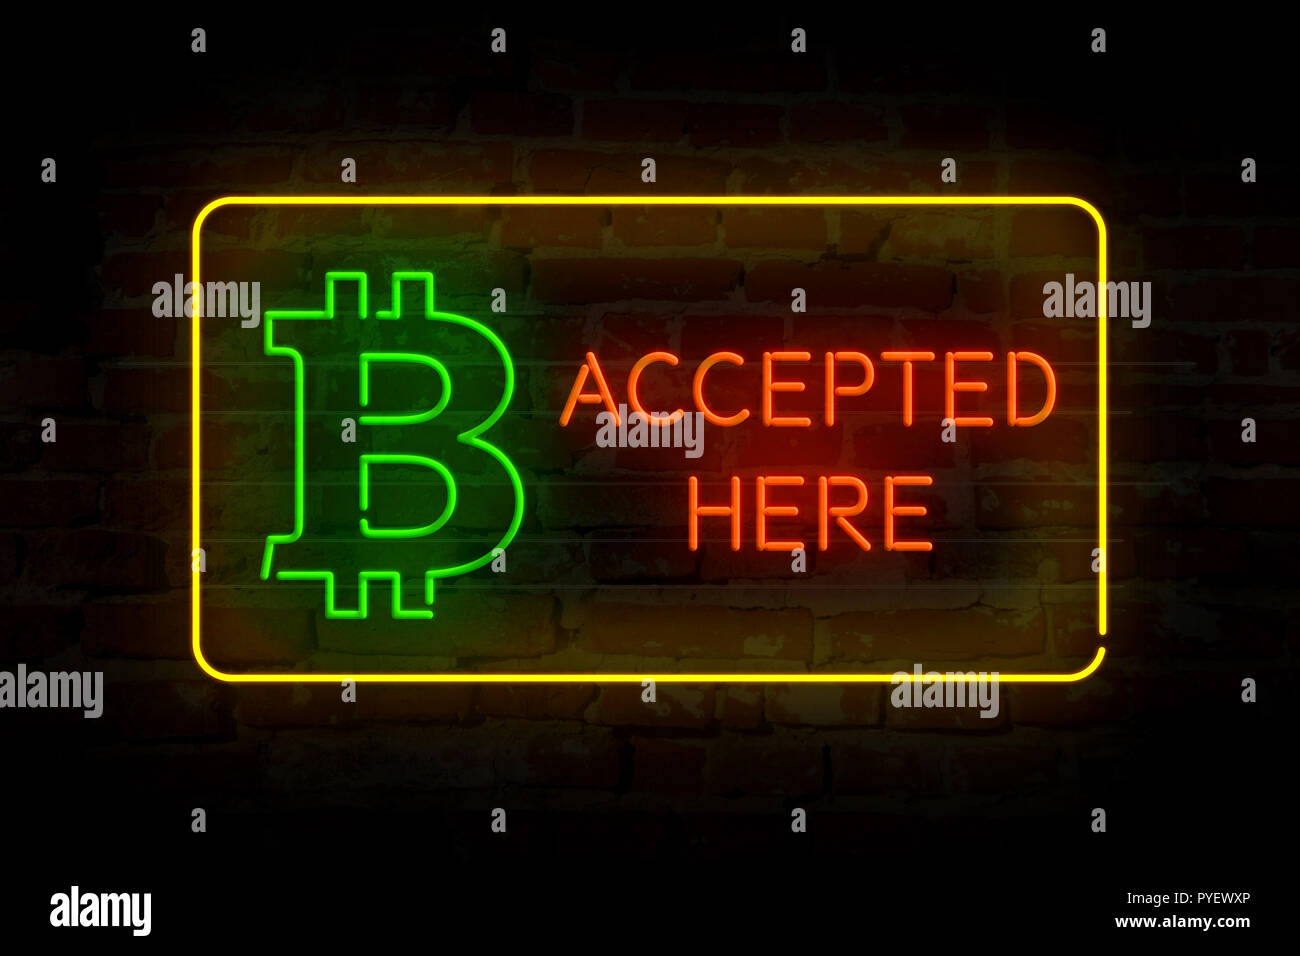 Bitcoin accepted here neon lights on brick wall abstract